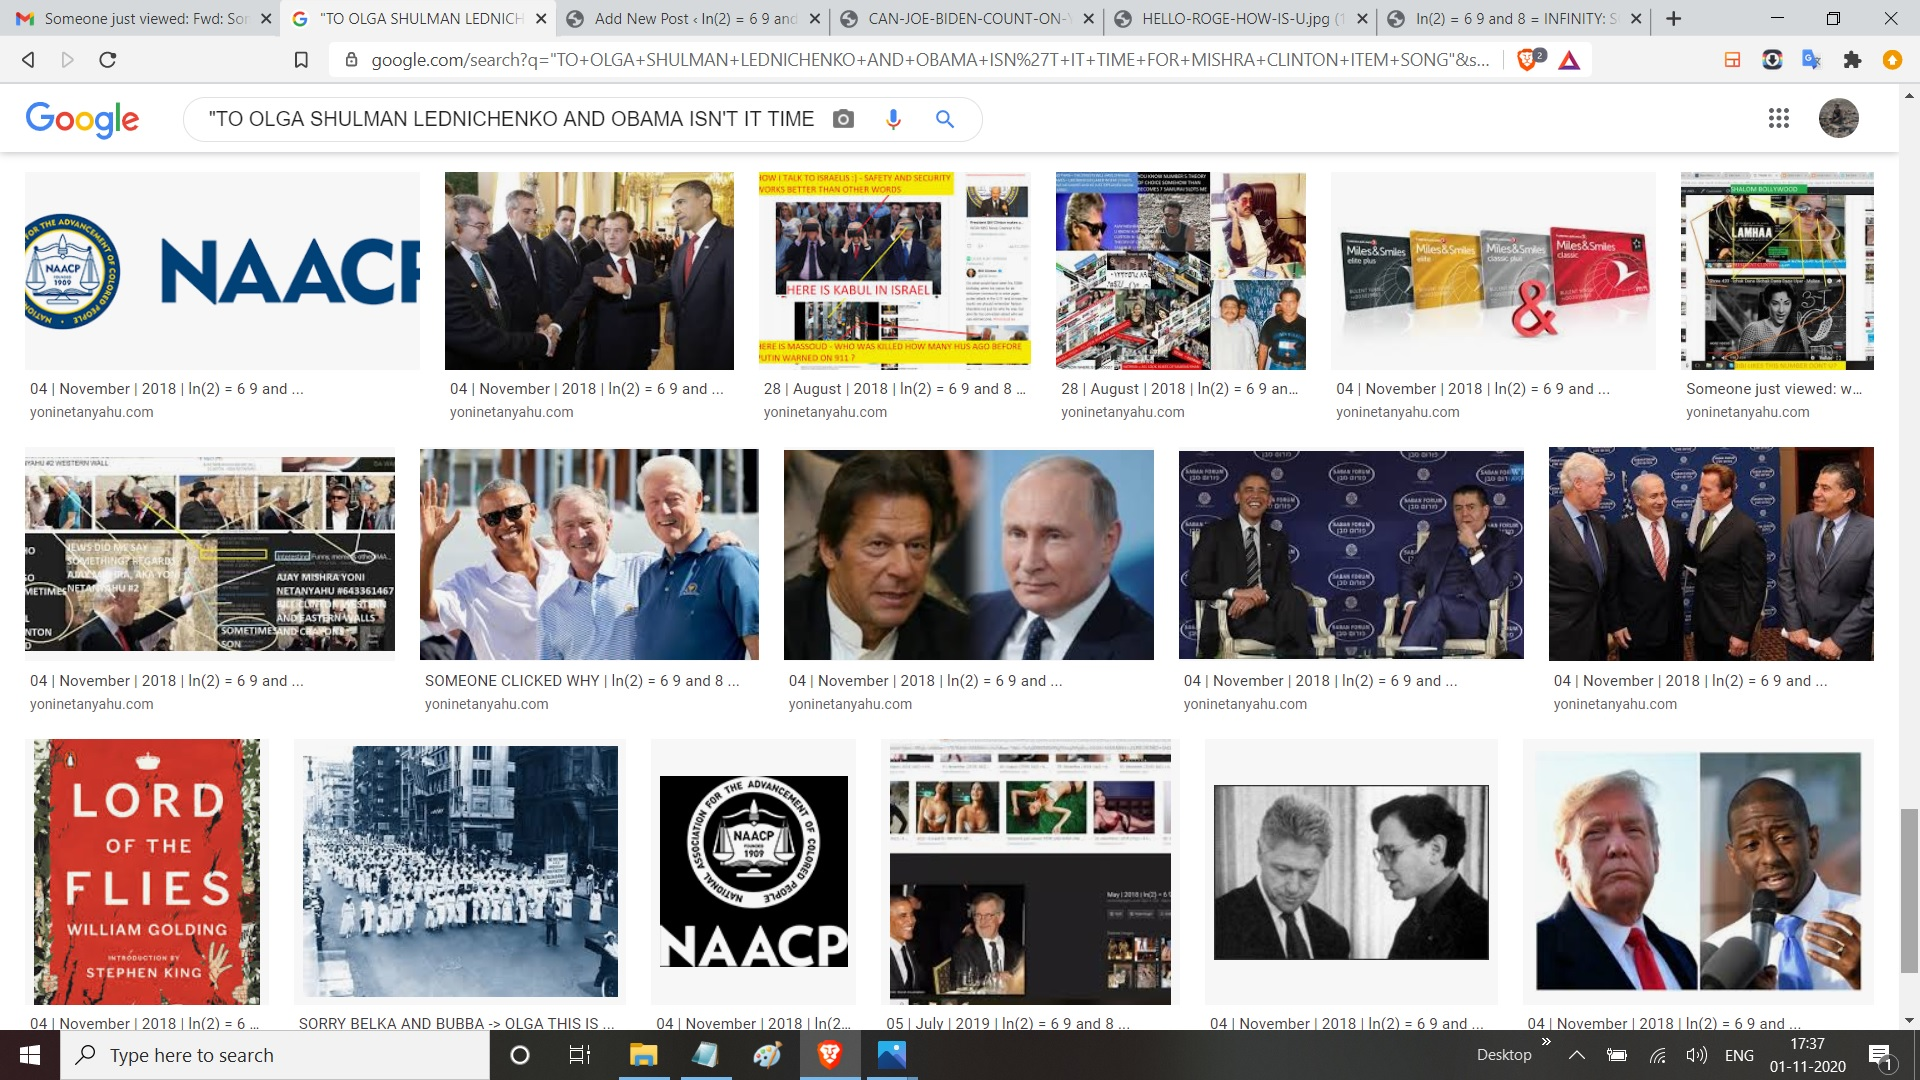 TO OLGA SHULMAN LEDNICHENKO AND OBAMA ISN'T IT TIME FOR MISHRA CLINTON ITEM SONG